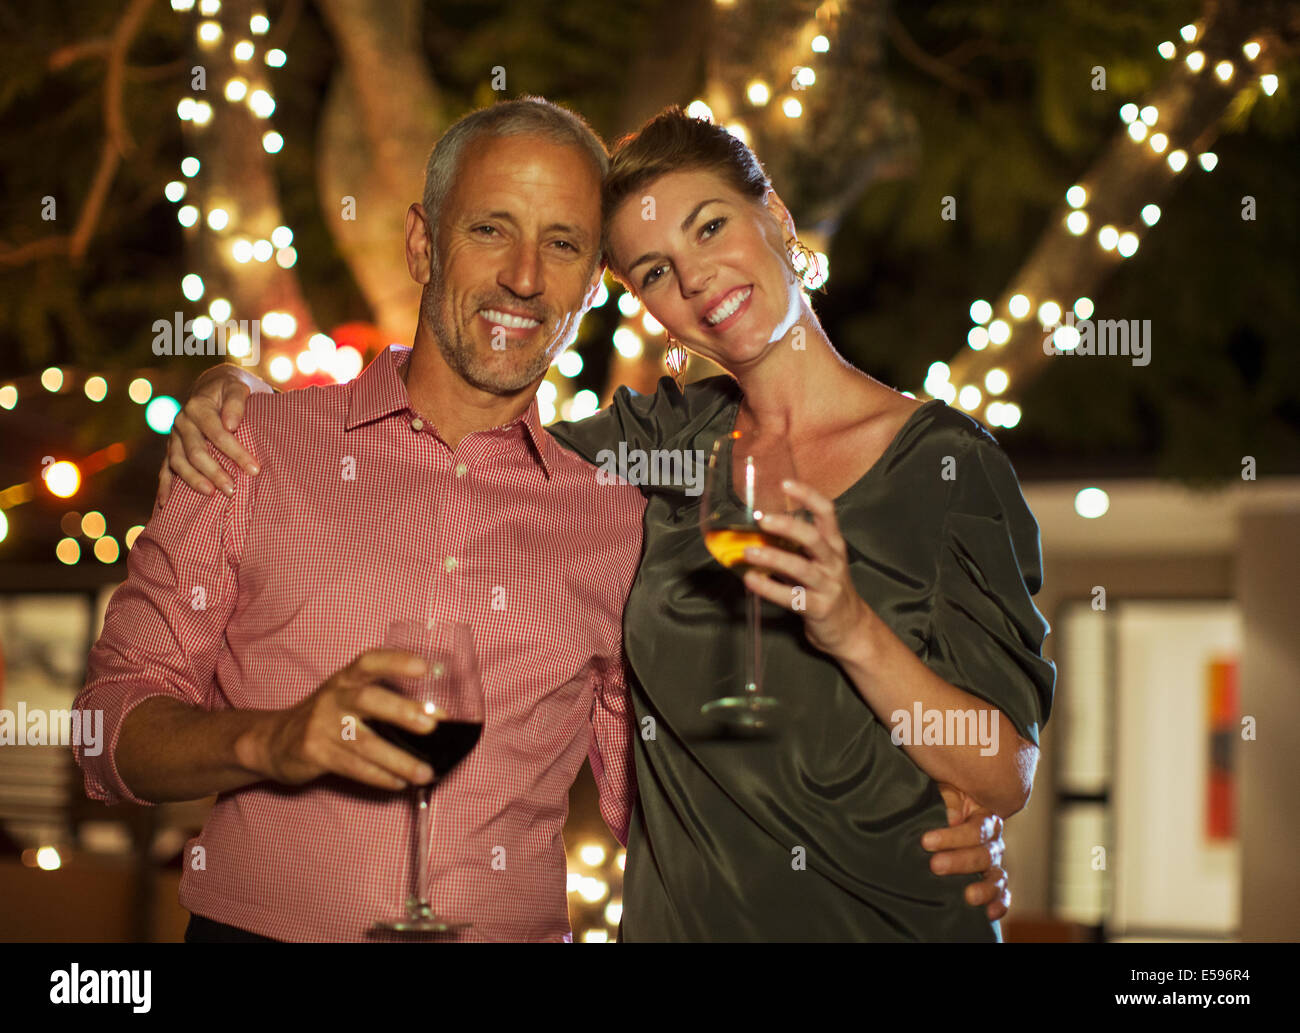 Couple drinking wine together outdoors - Stock Image